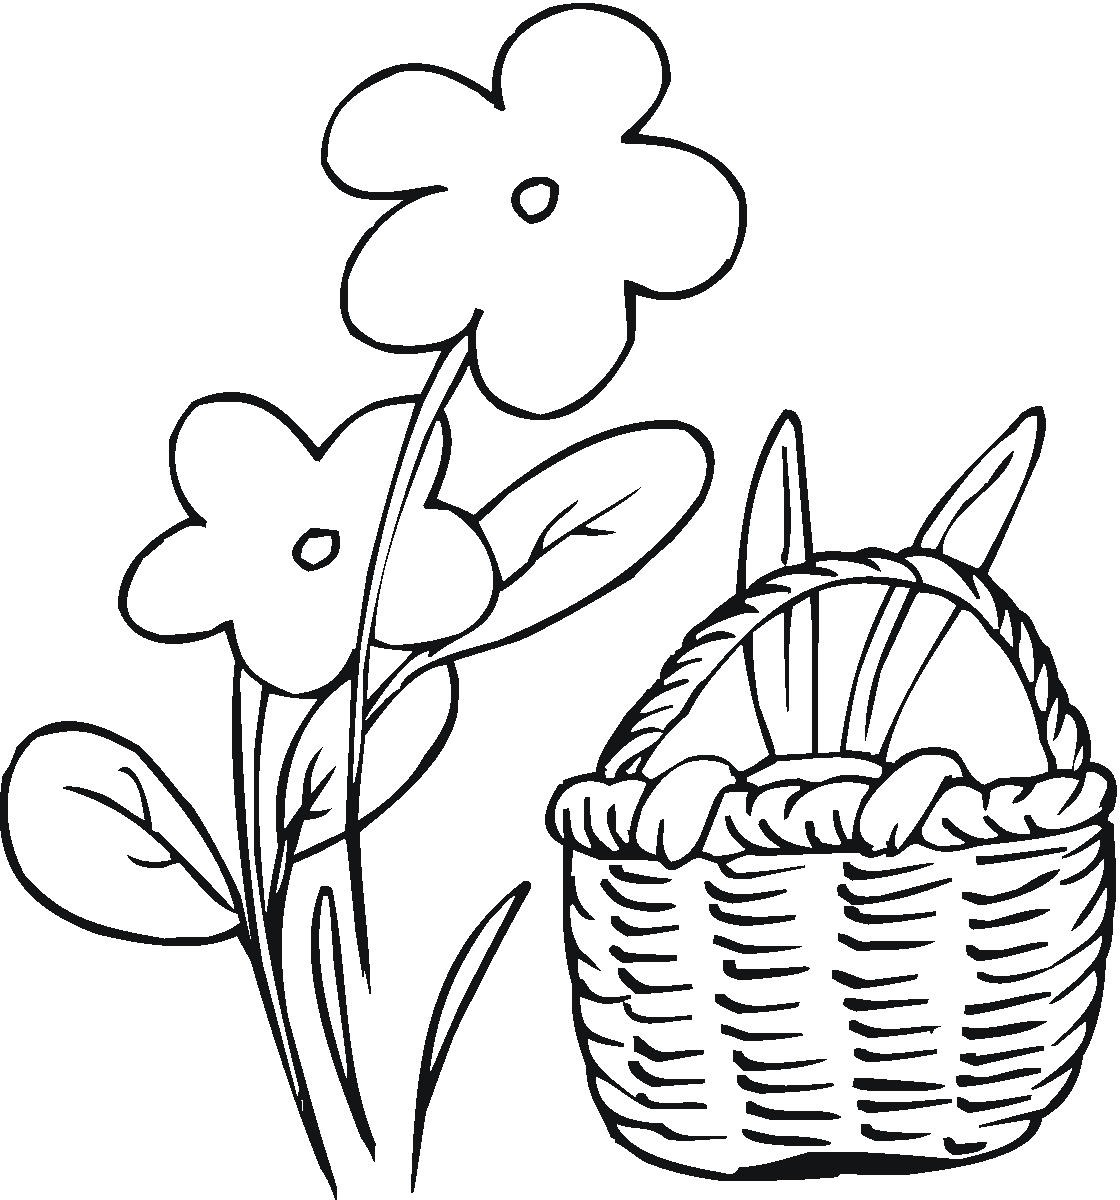 Coloring pages bunny - Easter Bunny Coloring Page Easter Bunny Printable